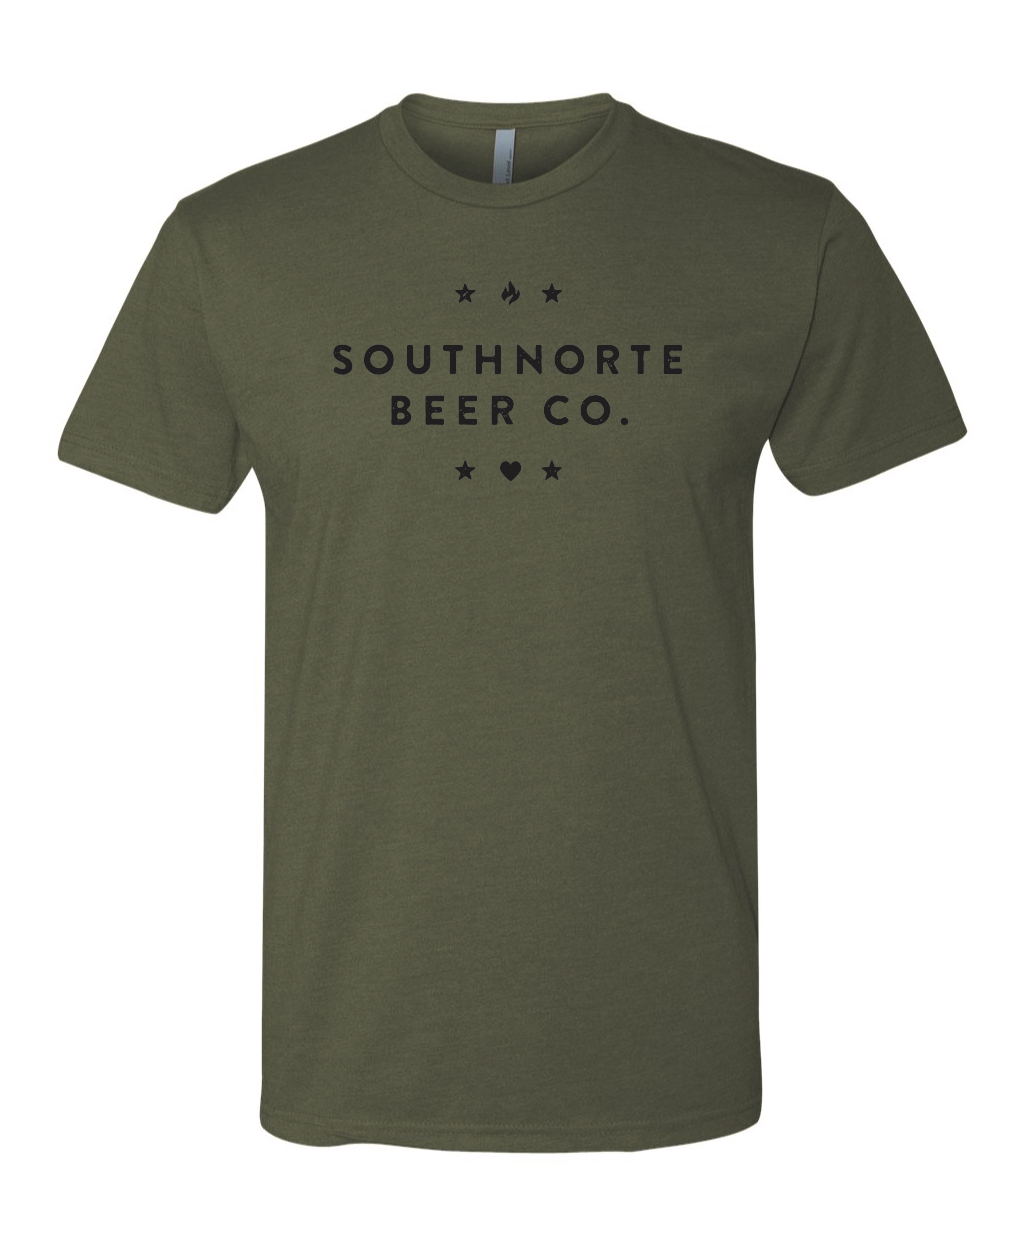 San Diego - SouthNorte Beer Co.